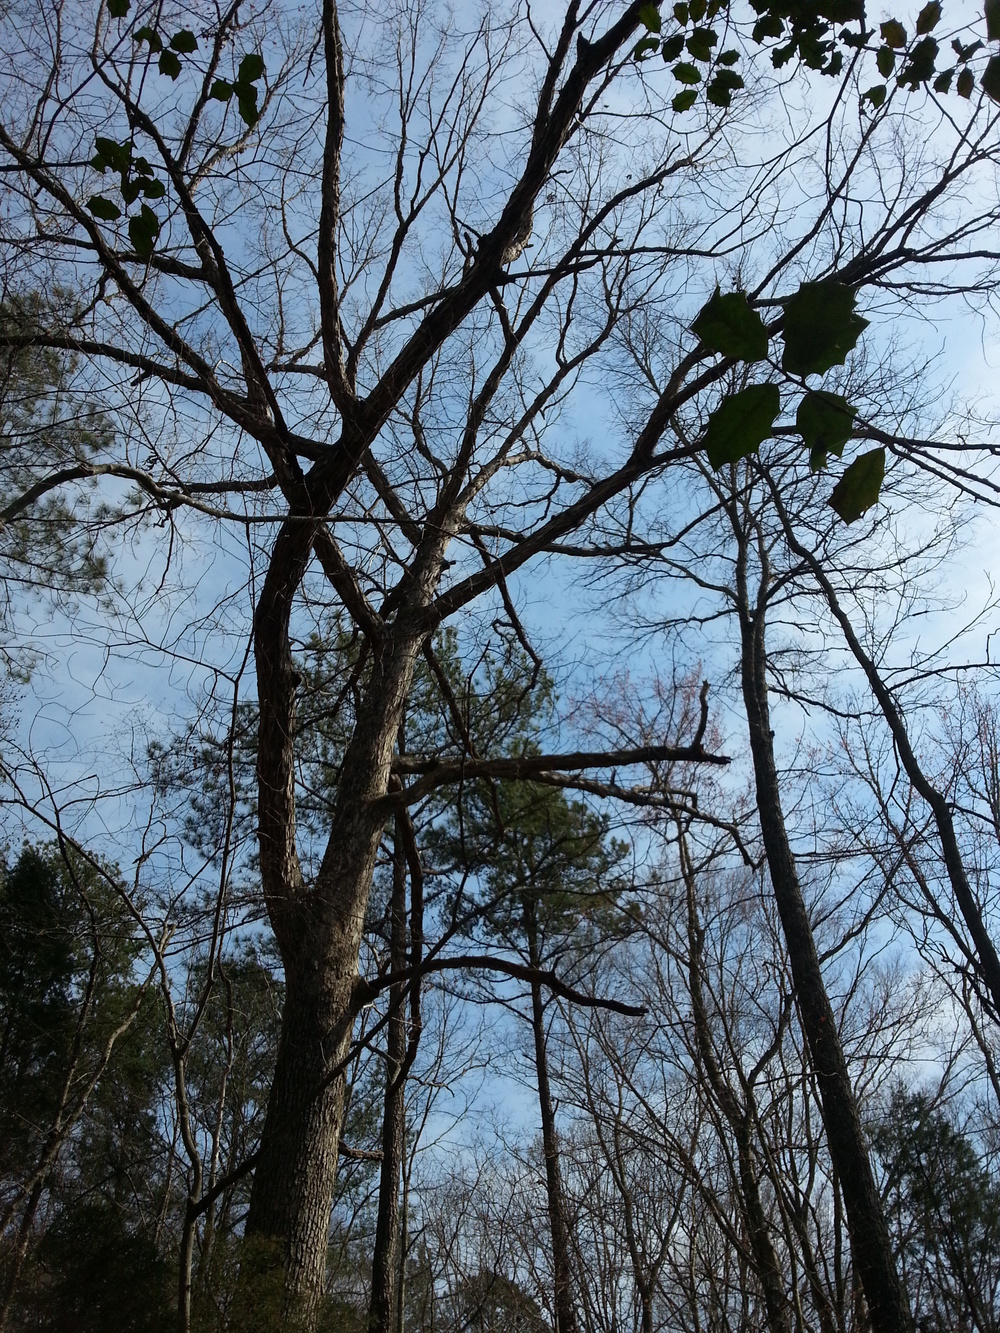 Don't forget to look up! This area is great for bird-watching, and it's not uncommon to find a bald eagle.